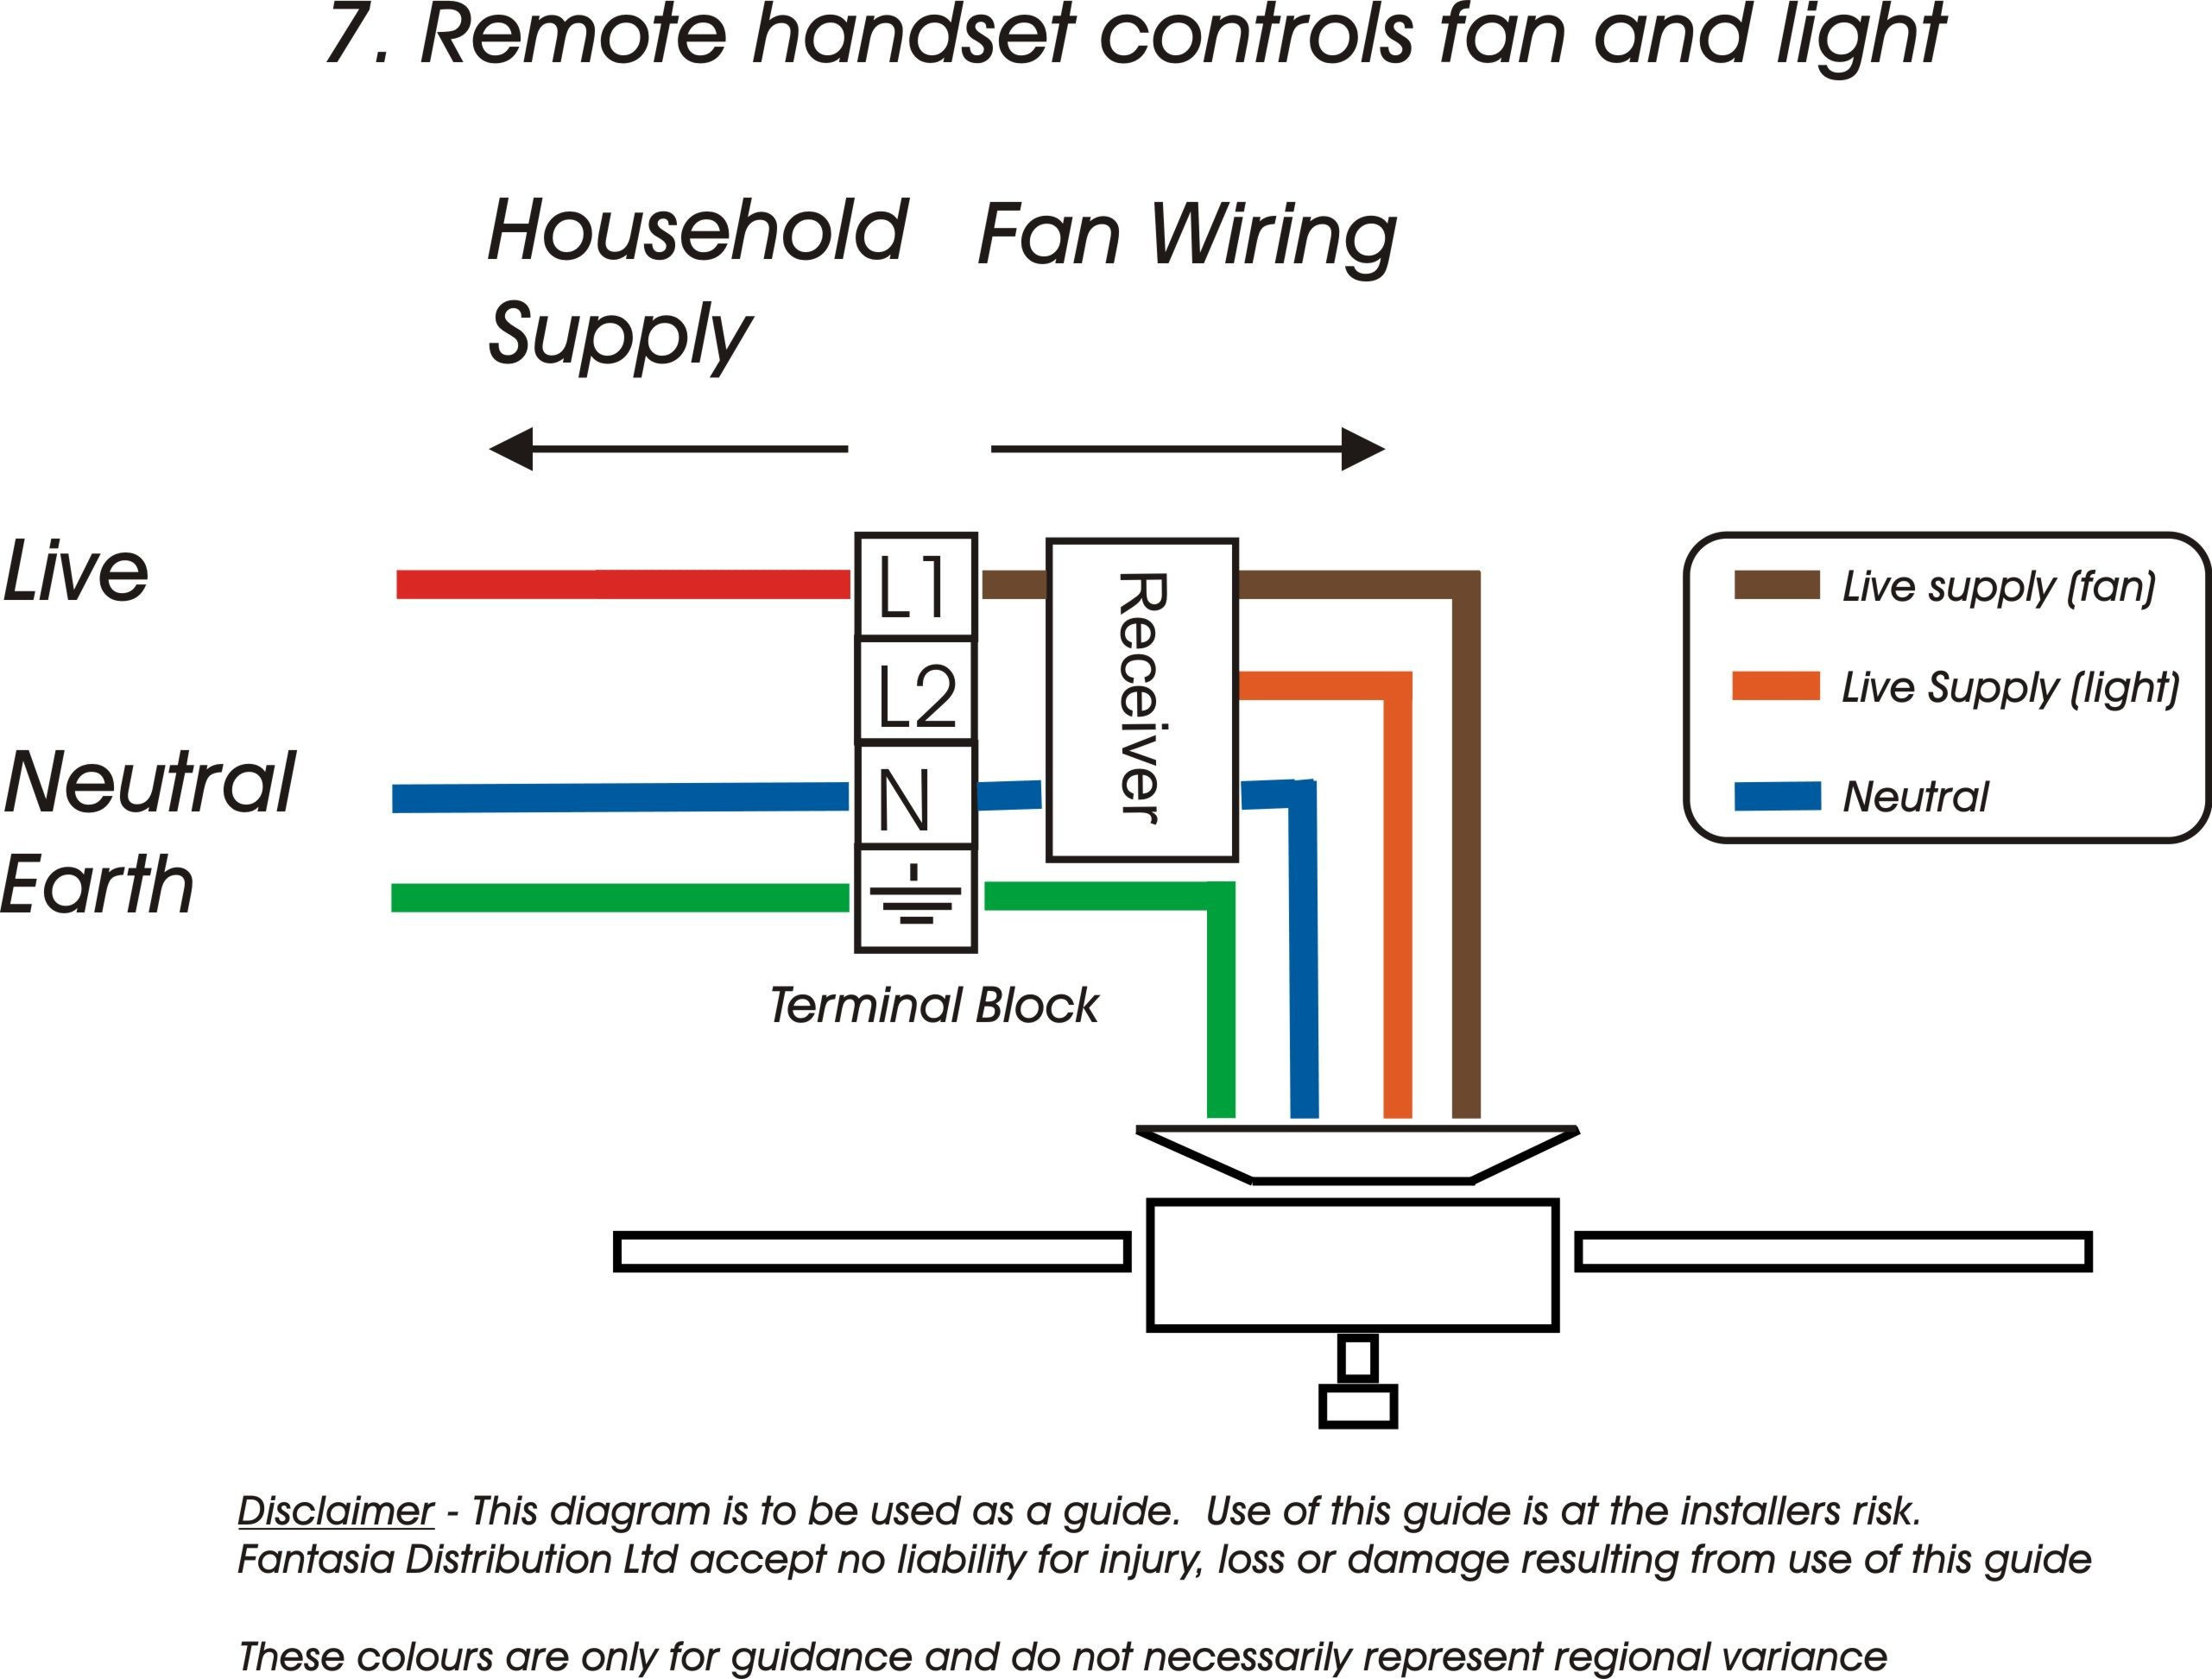 Hunter Ceiling Fan Wiring Diagram with Remote Control Collection on harbor breeze ceiling fan white, harbor breeze ceiling fan small room, harbor breeze fan switch diagram, harbor breeze ceiling fan replacement, harbor breeze fan switch schematic, harbor breeze fan troubleshooting,